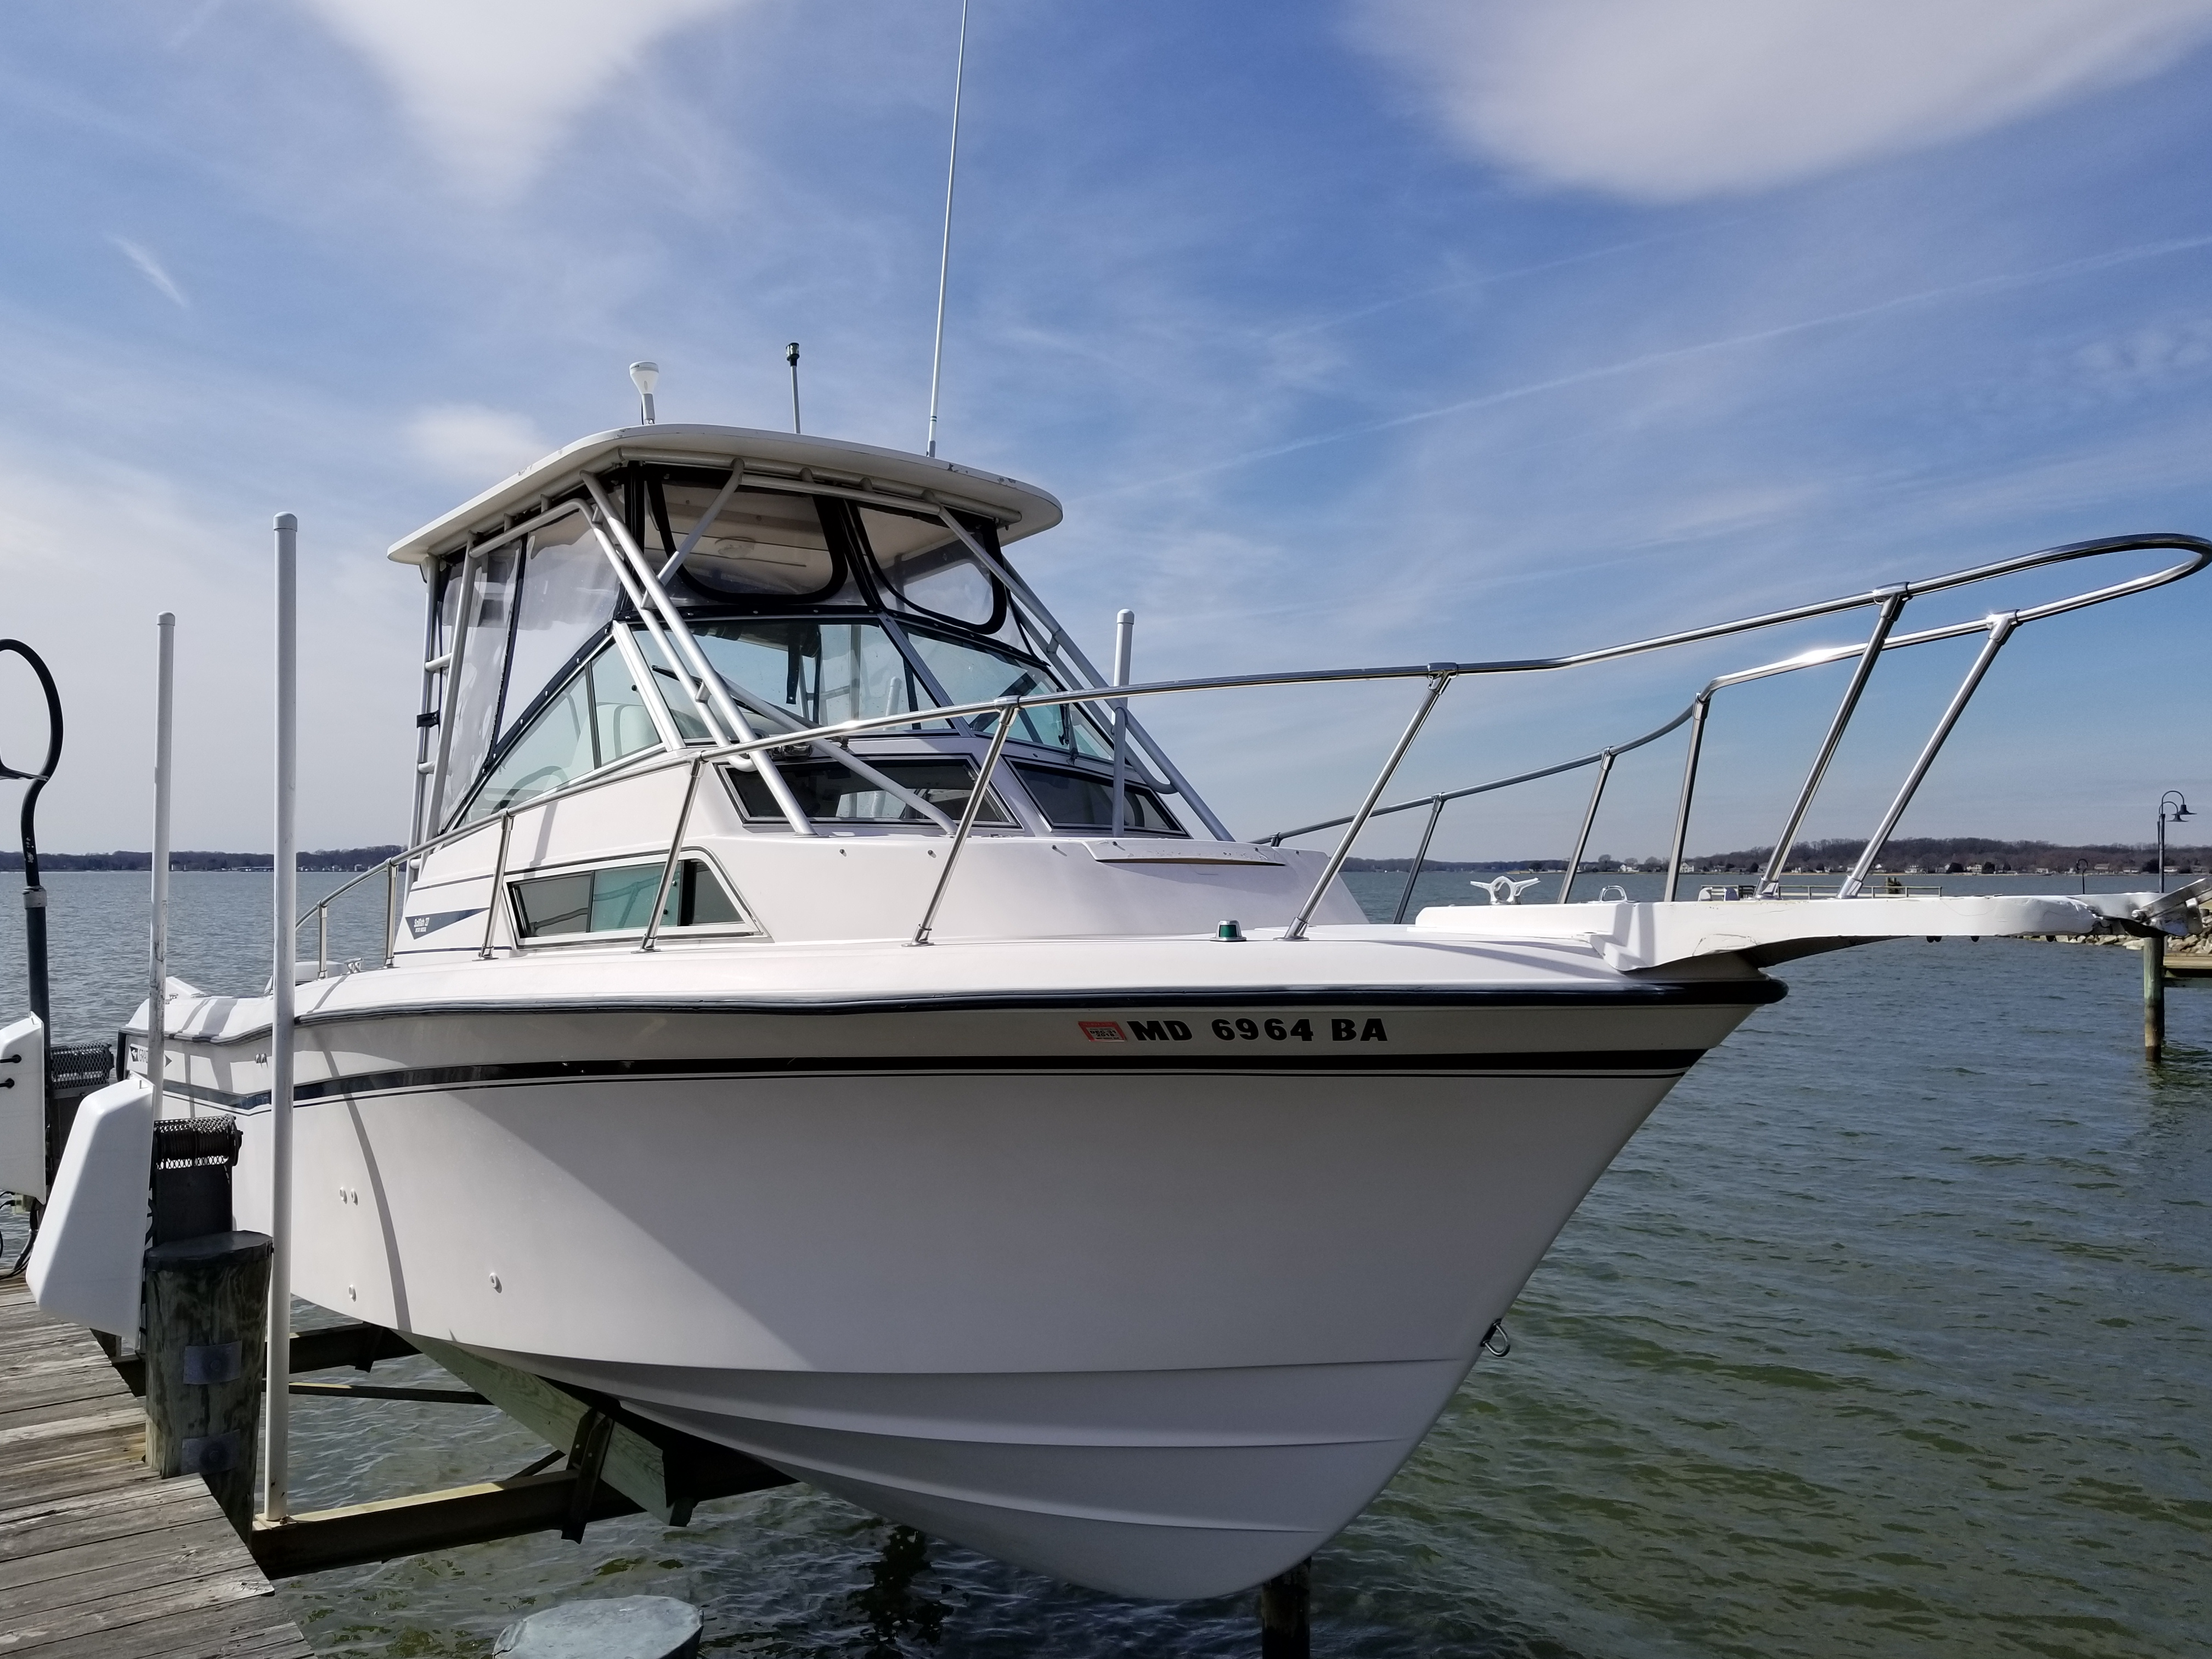 1995 Grady-White Sailfish 27 Grady White Sailfish